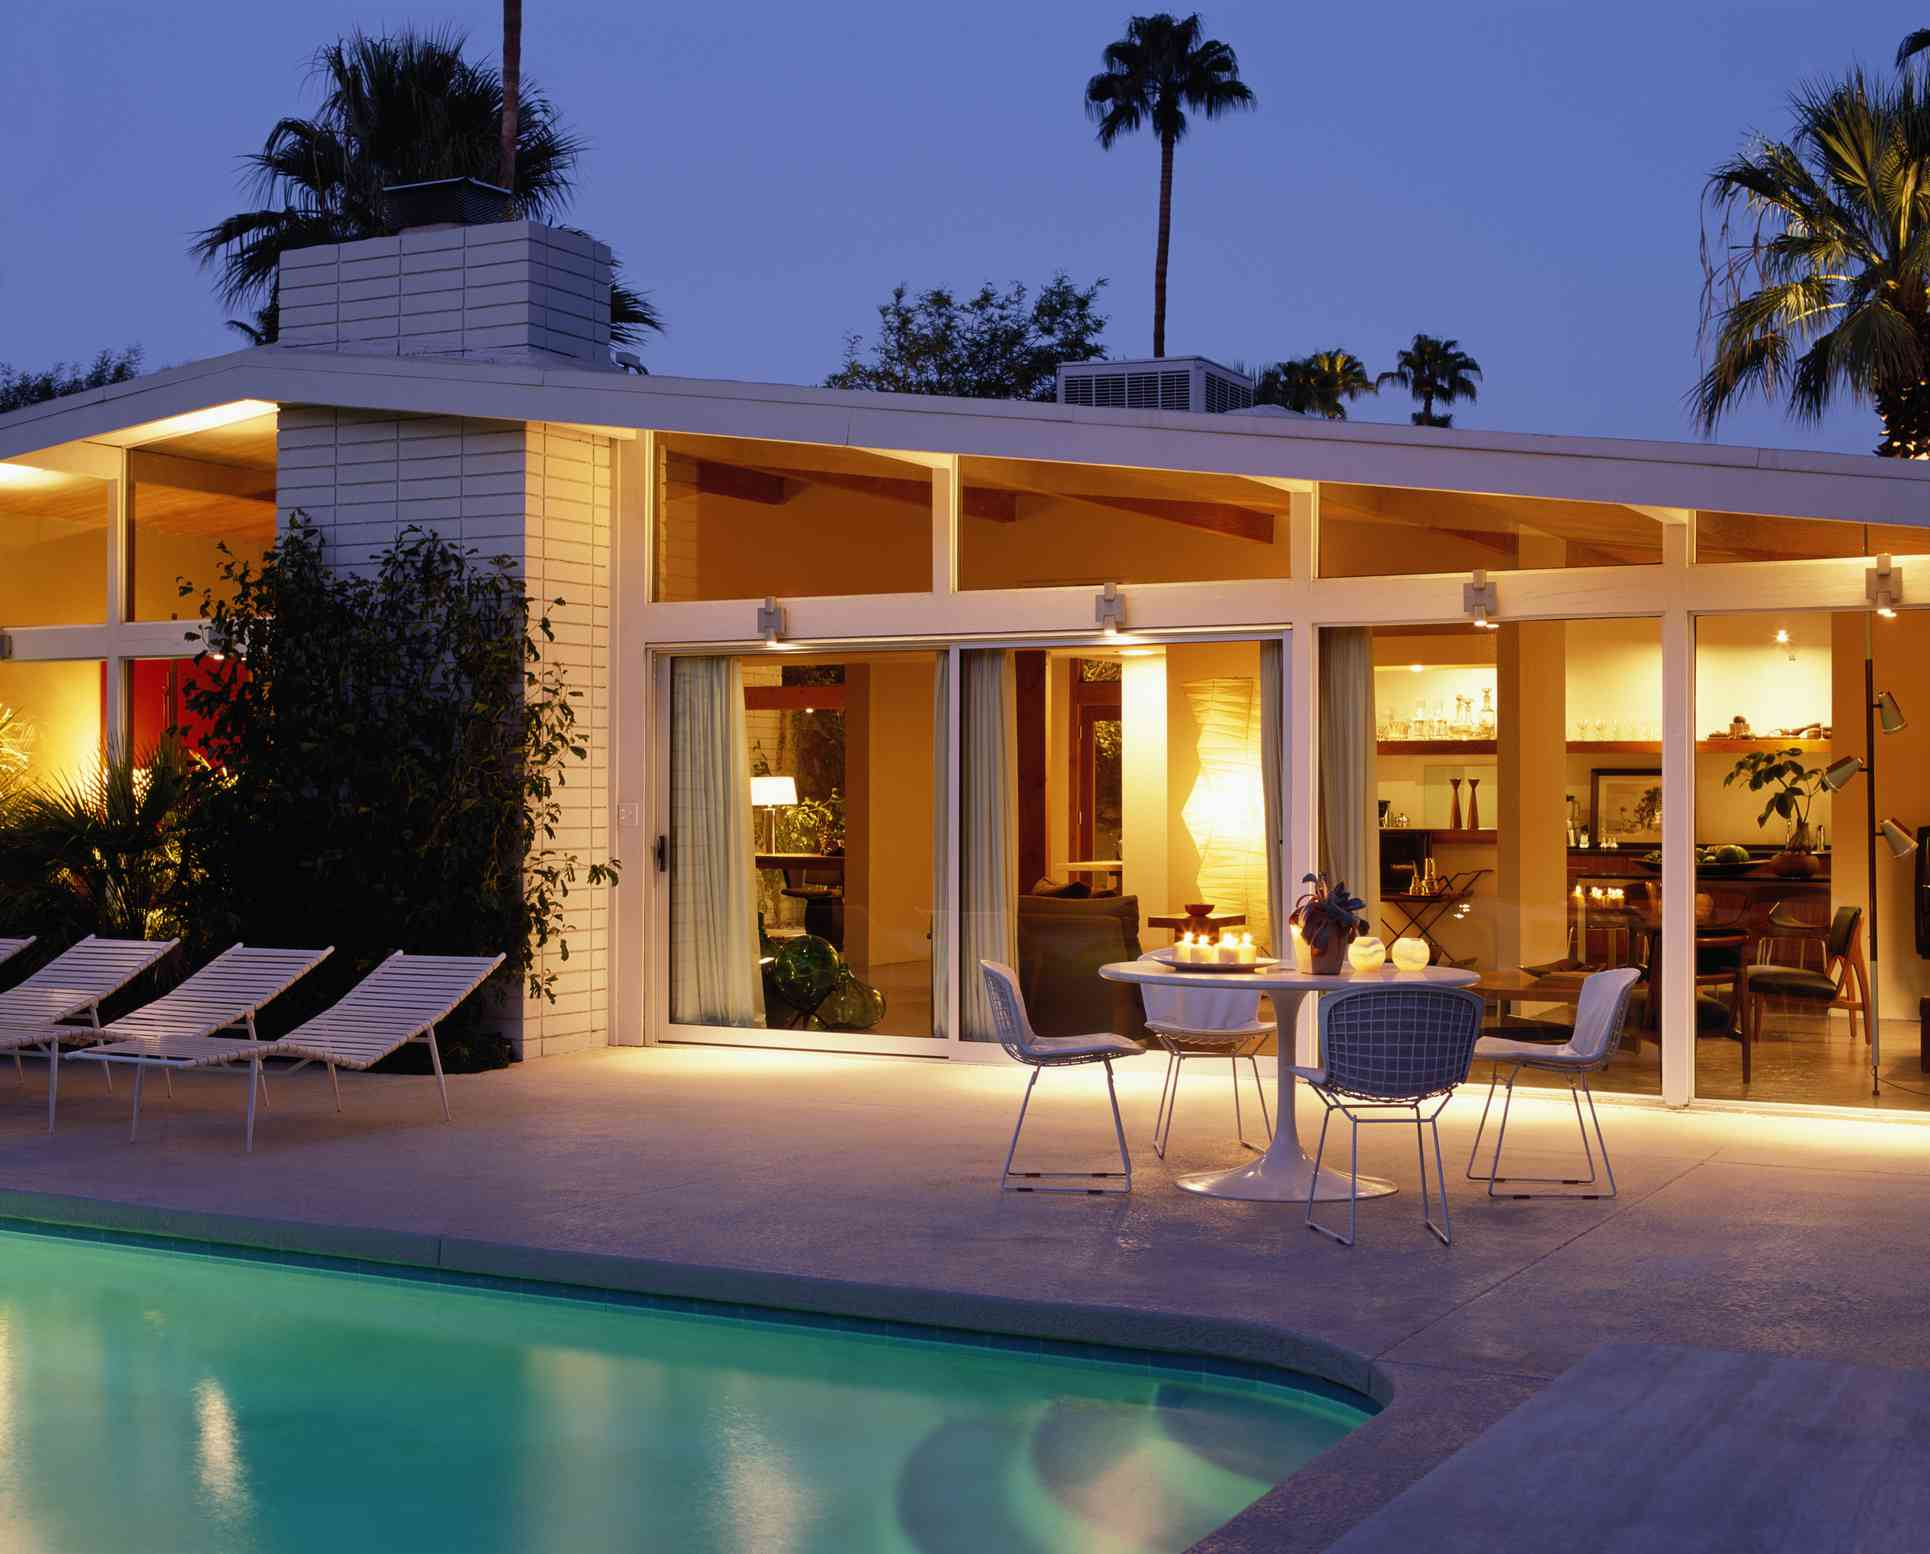 A gabled roof on a mid-century modern home.